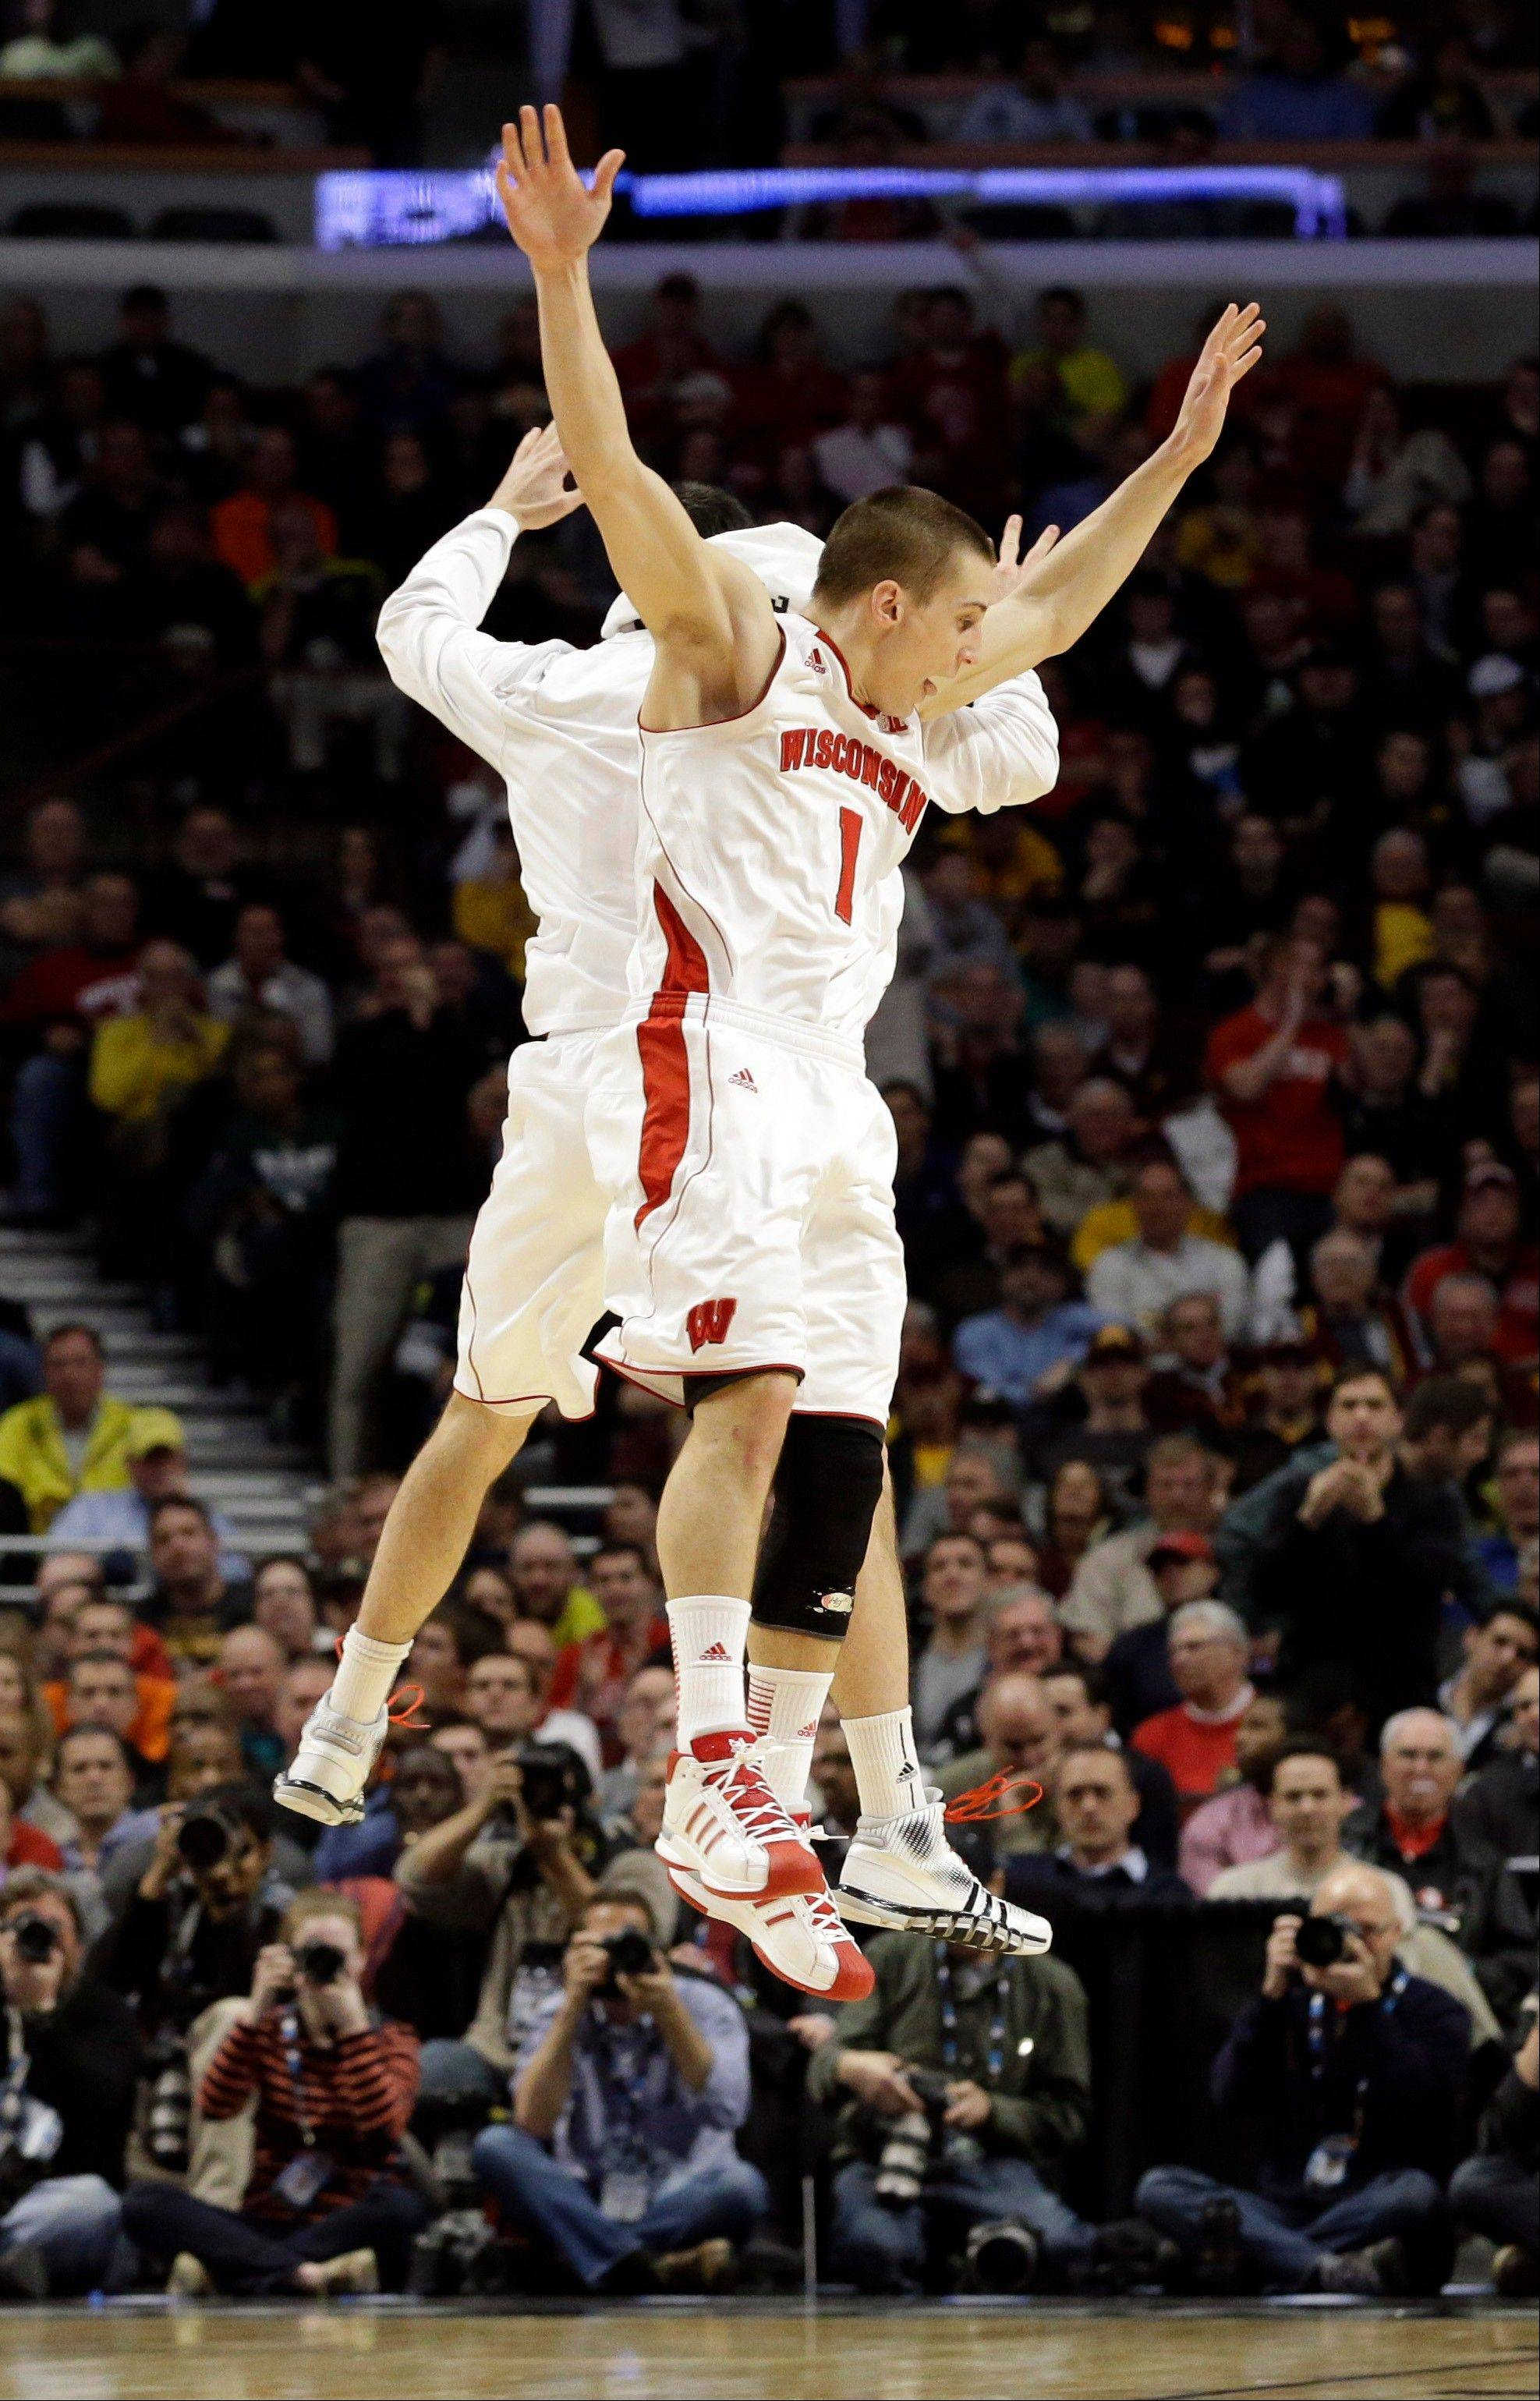 Wisconsin player and Mundelein native Ben Brust celebrates with a teammate during the second half of an NCAA college basketball game at the Big Ten tournament against MichiganFriday, March 15, 2013, in Chicago. Wisconsin won 68-59. (AP Photo/Nam Y. Huh)